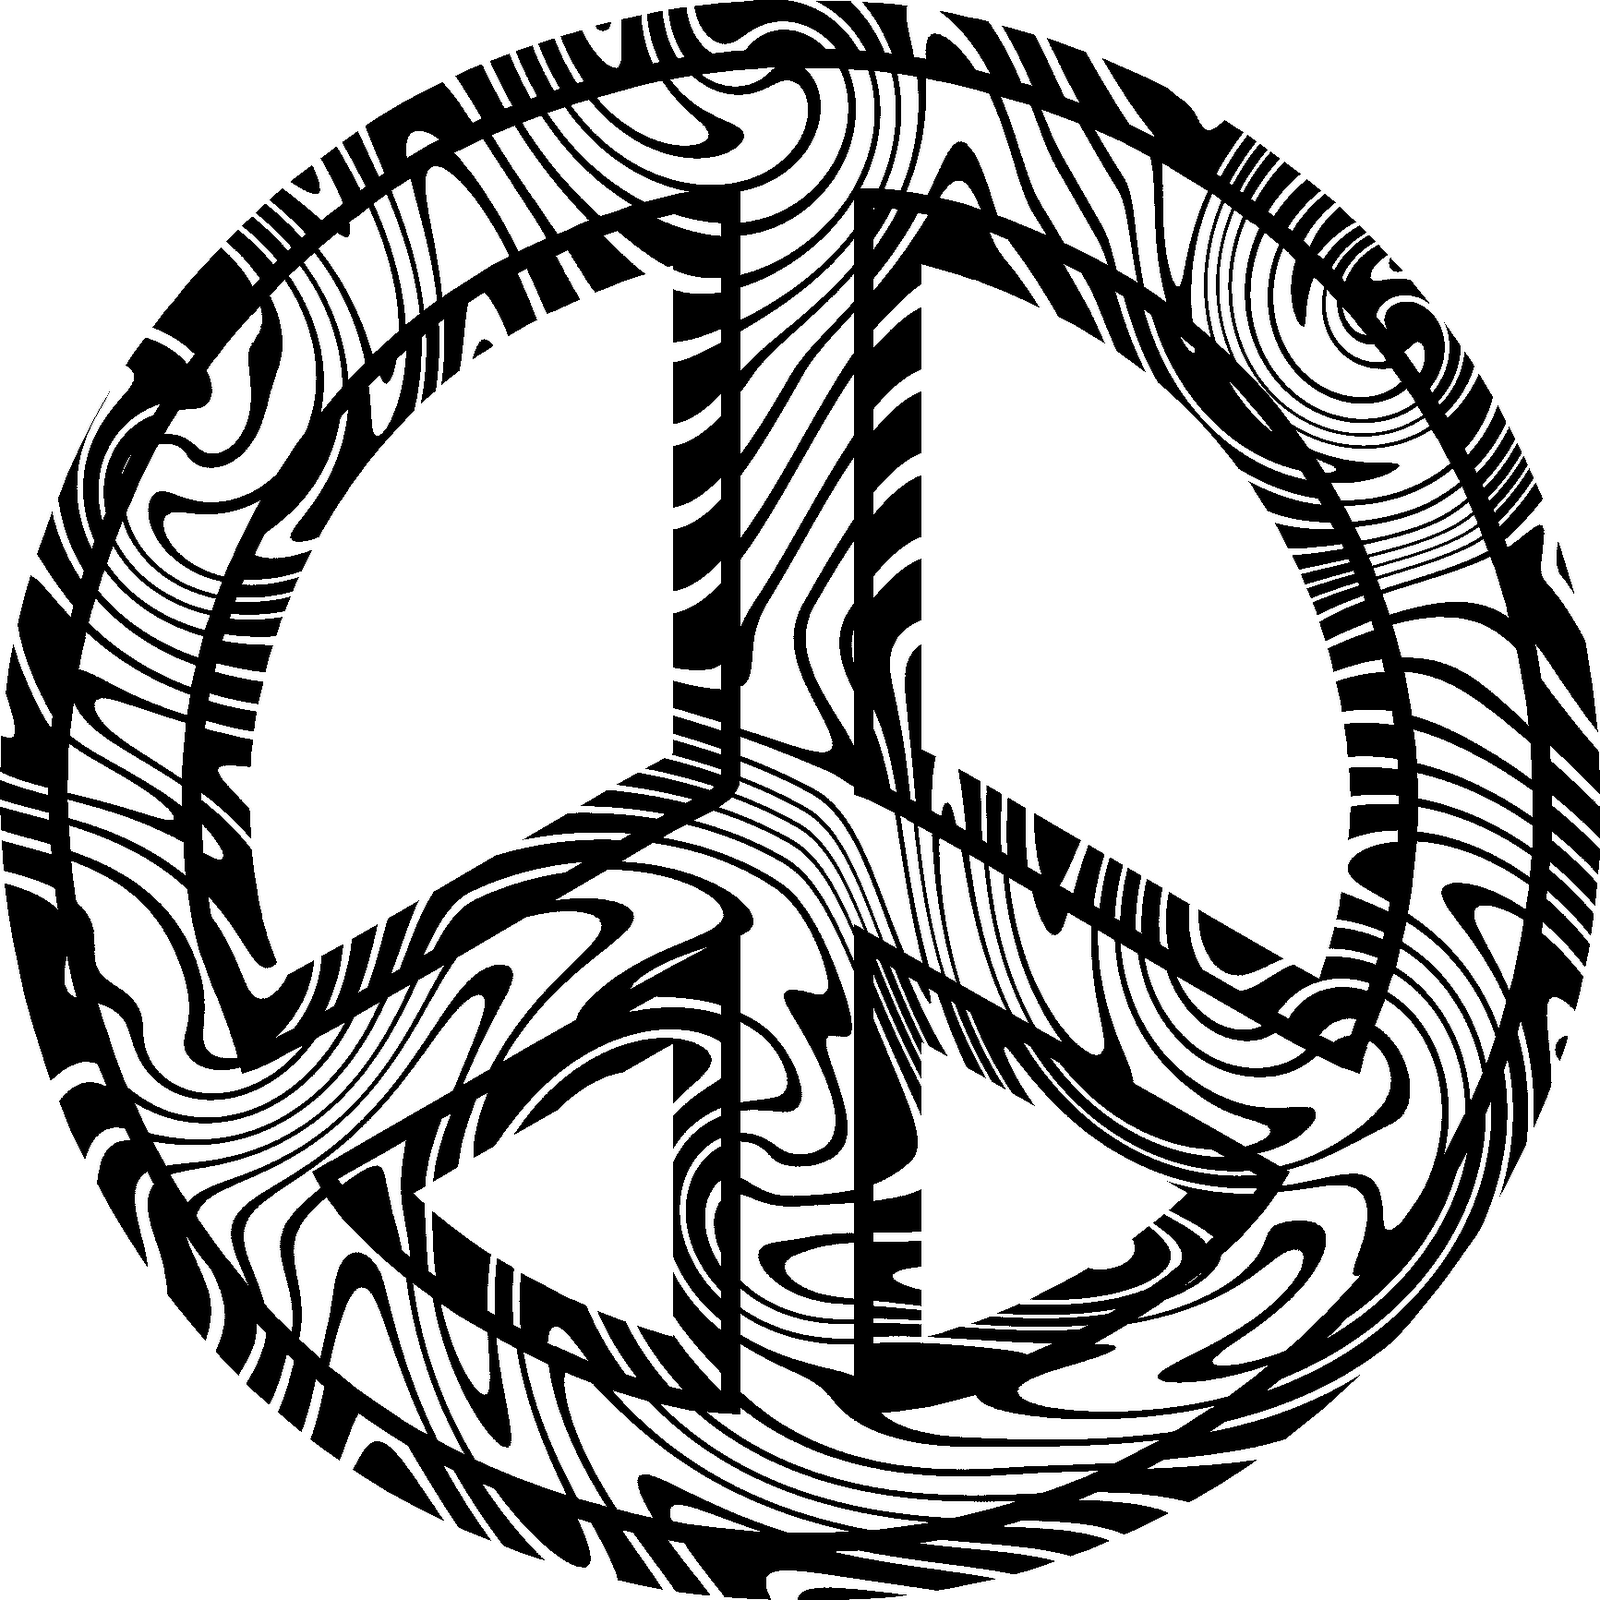 Peace sign template free download grocery list template printable peace coloring pages to download and print for free 7 37 peace coloring pages peace sign template free download peace sign template free download biocorpaavc